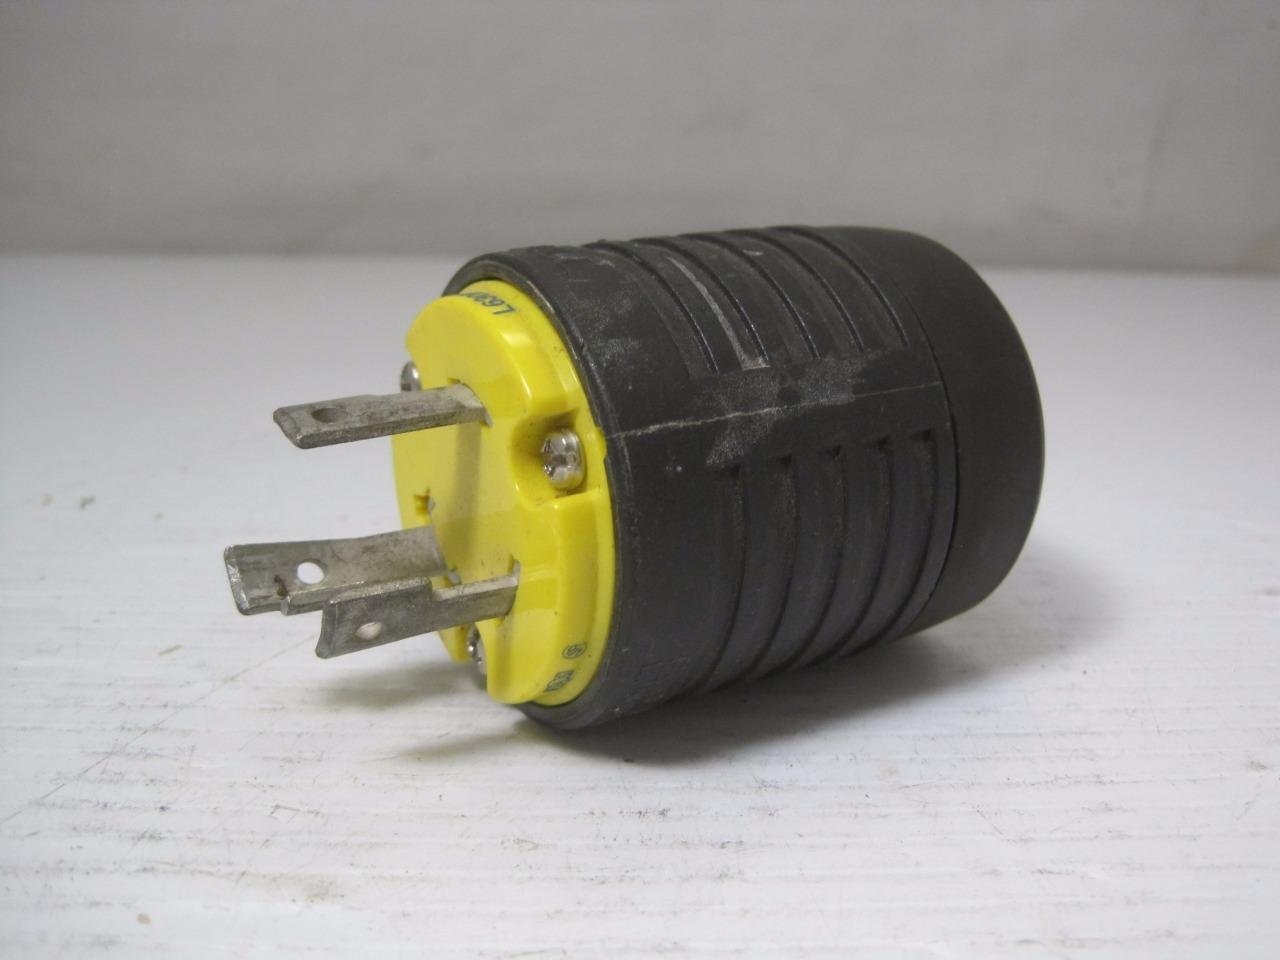 Pass Seymour L630p L630 P Turnlok Plug 30a Nema Us Ebay Extension Cord Replacement Electrical Plugs 15amp 125v 3 Prong